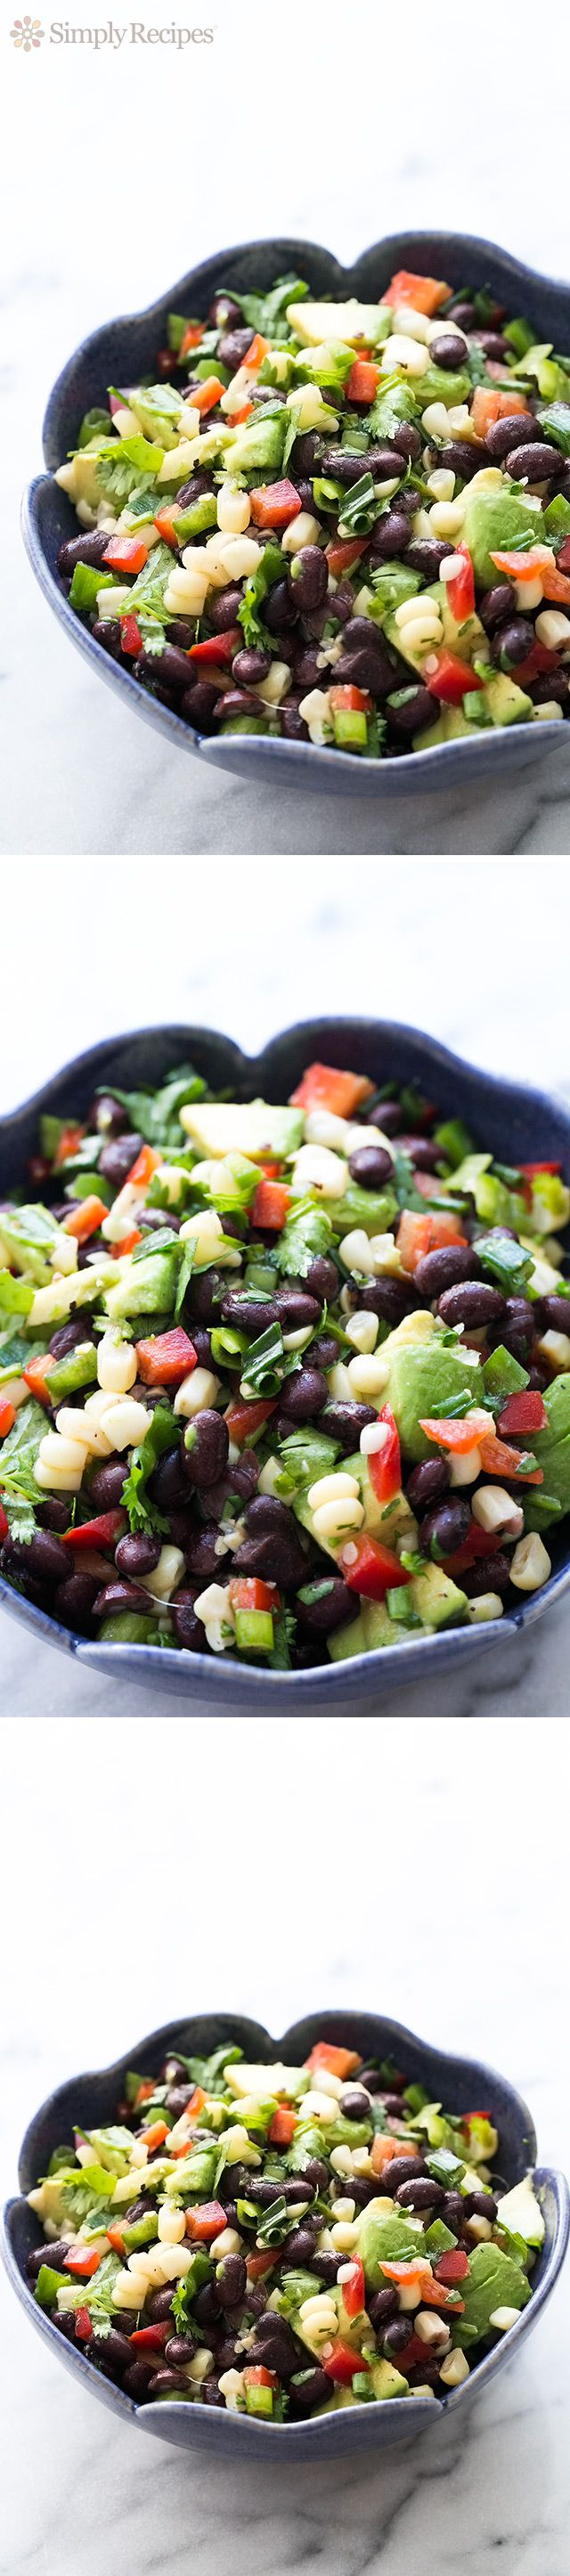 Black Bean Salad ~ Perfect for a summer picnic or potluck! Red bell peppers, jalapeños, avocado, black beans and corn combined to give this salad its kick and fresh flavors.